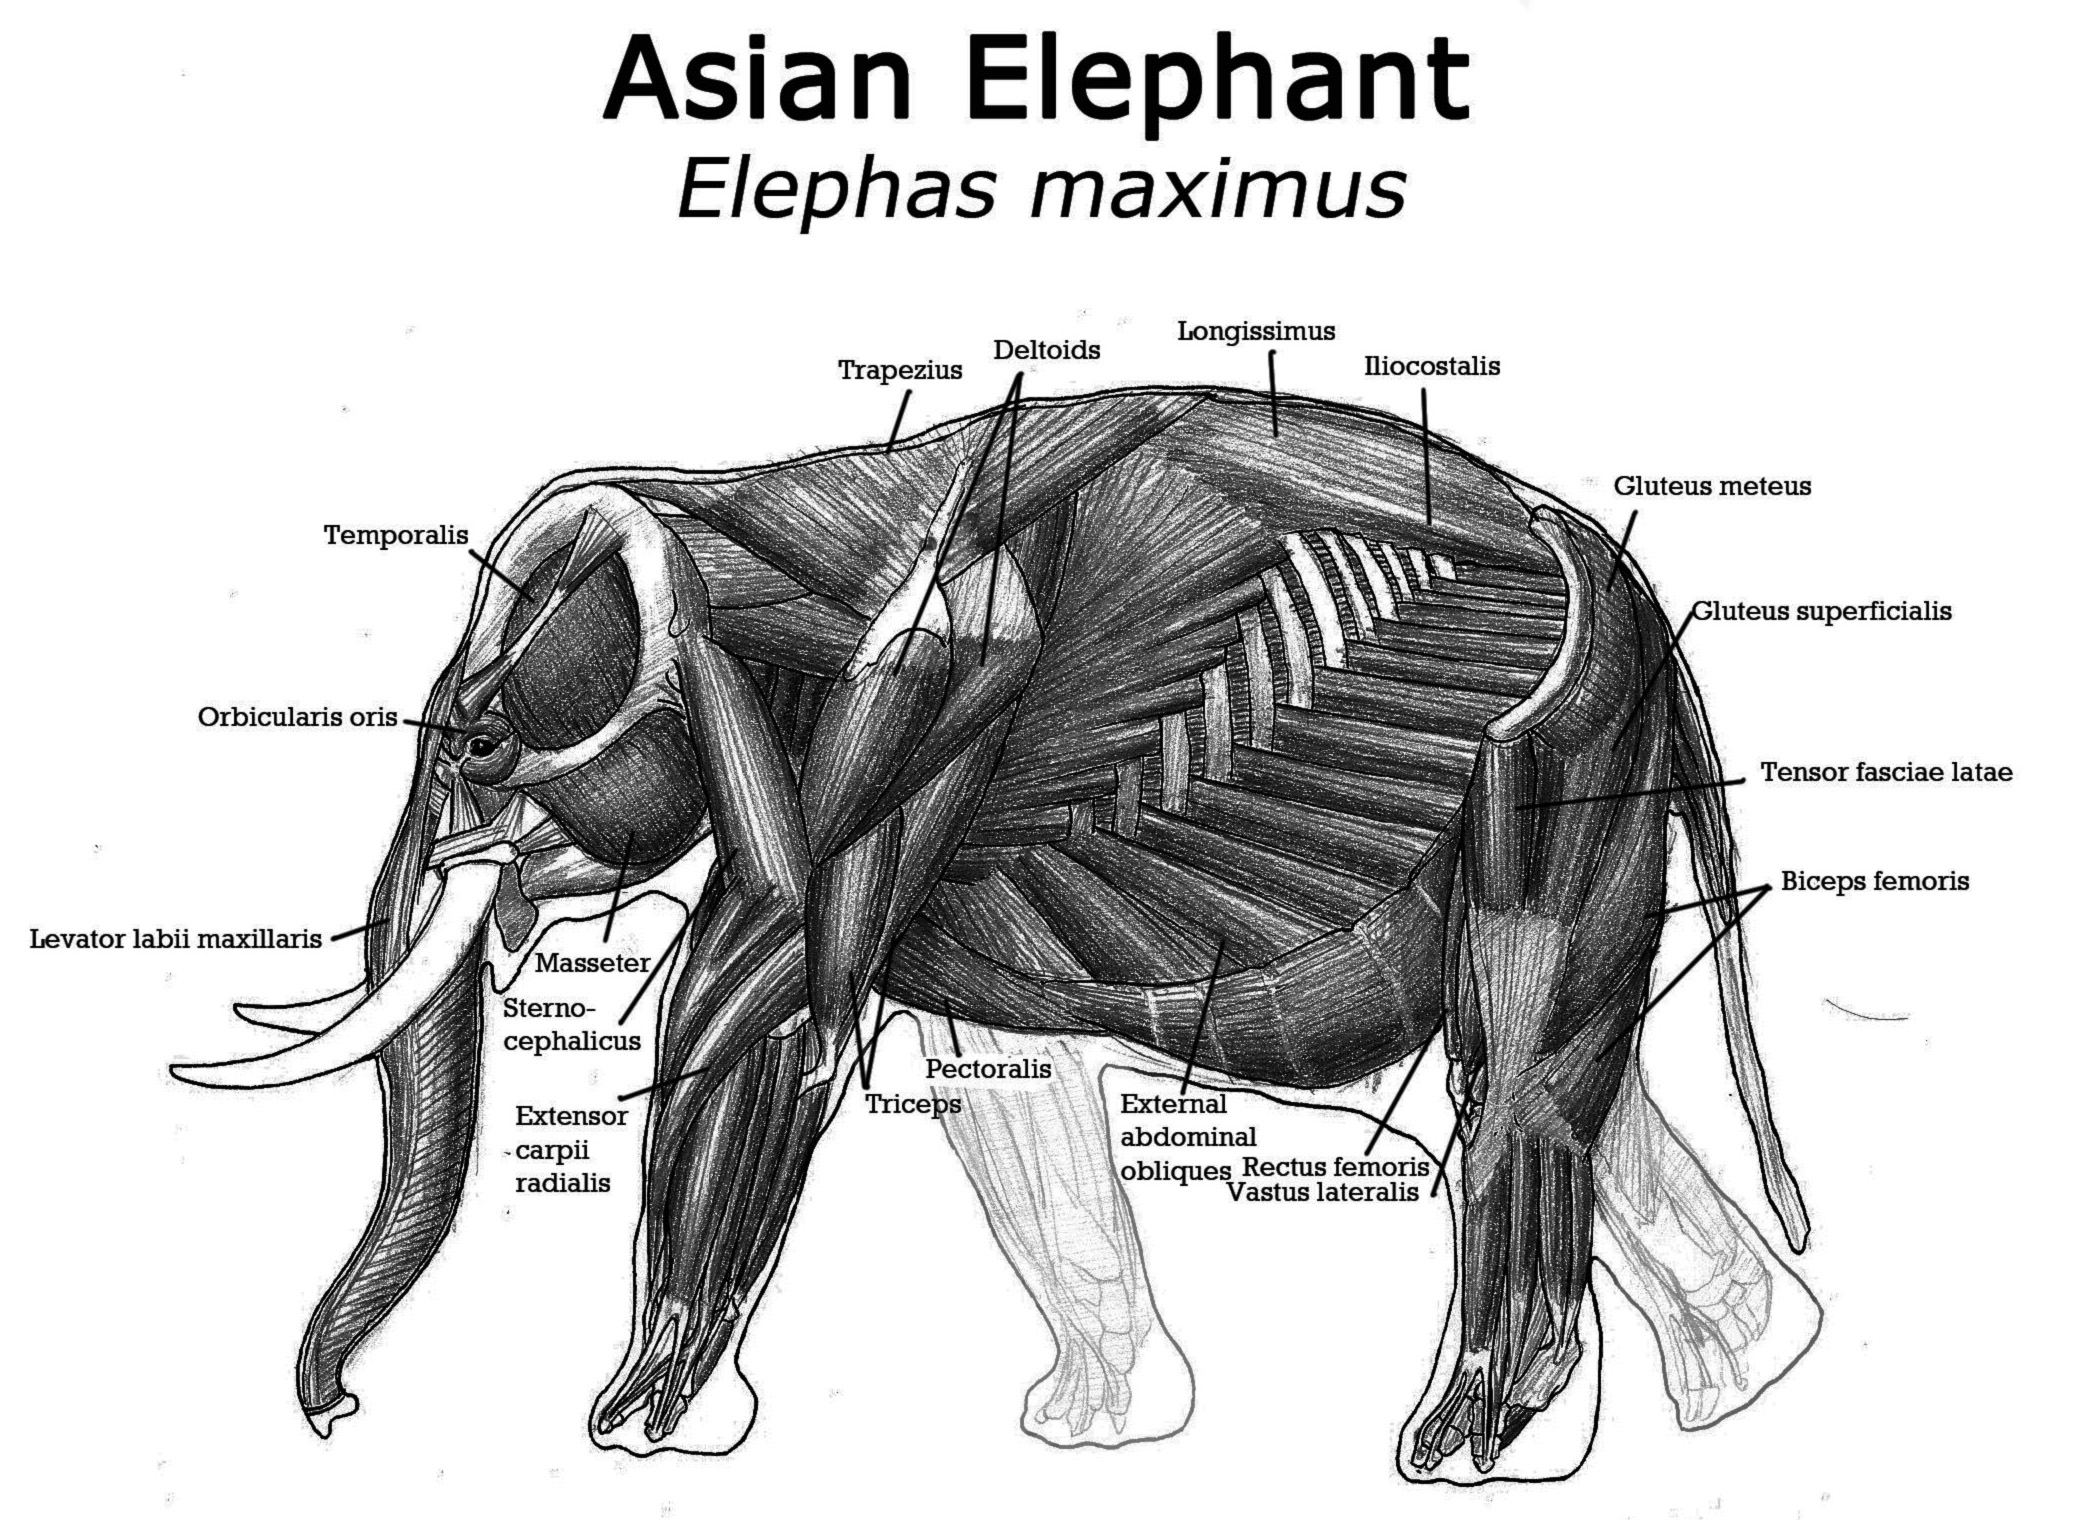 elephant shot placement images